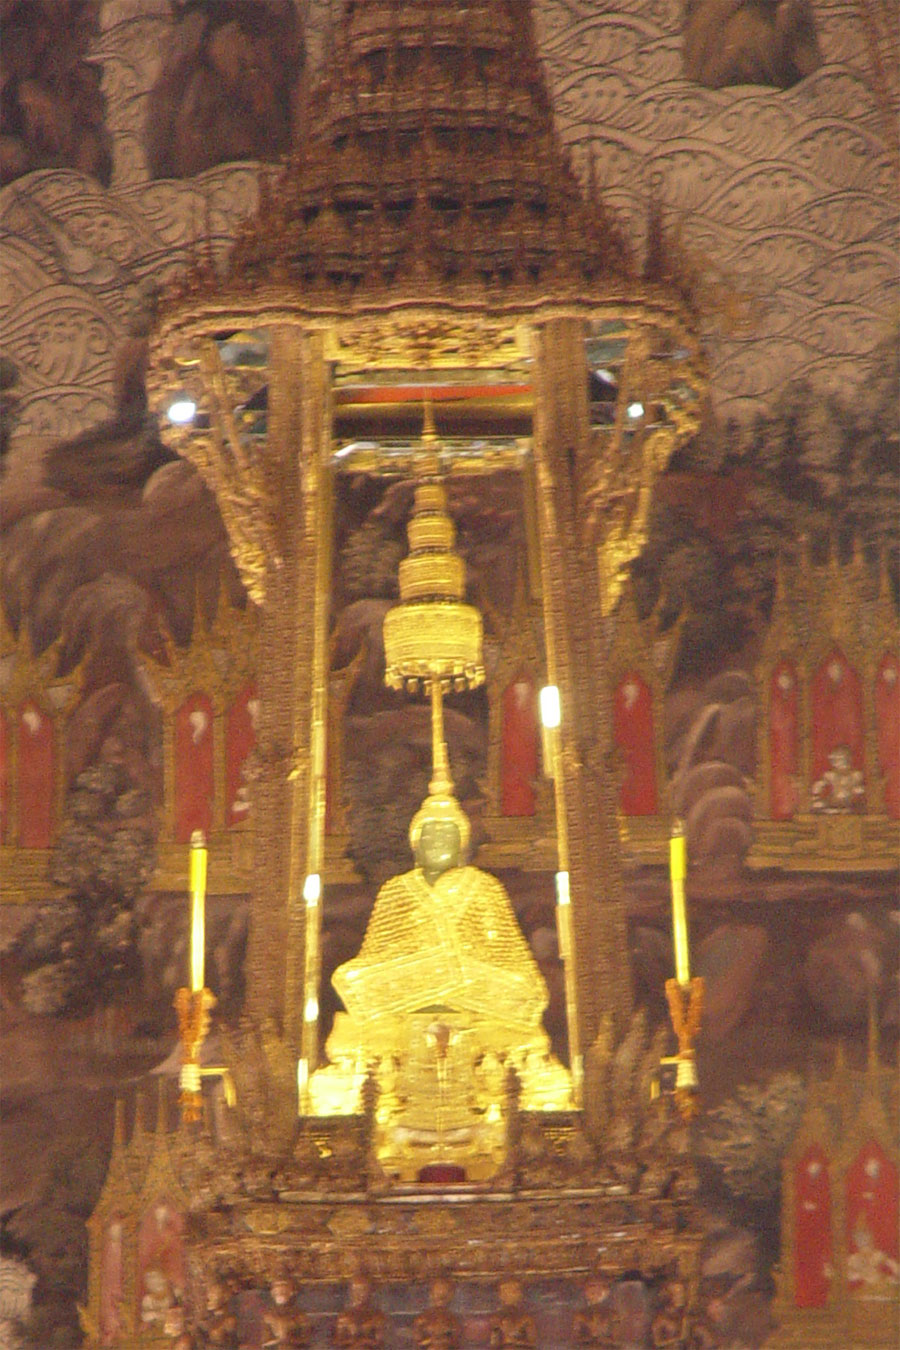 Picture of the Emerald Buddha from Bangkok